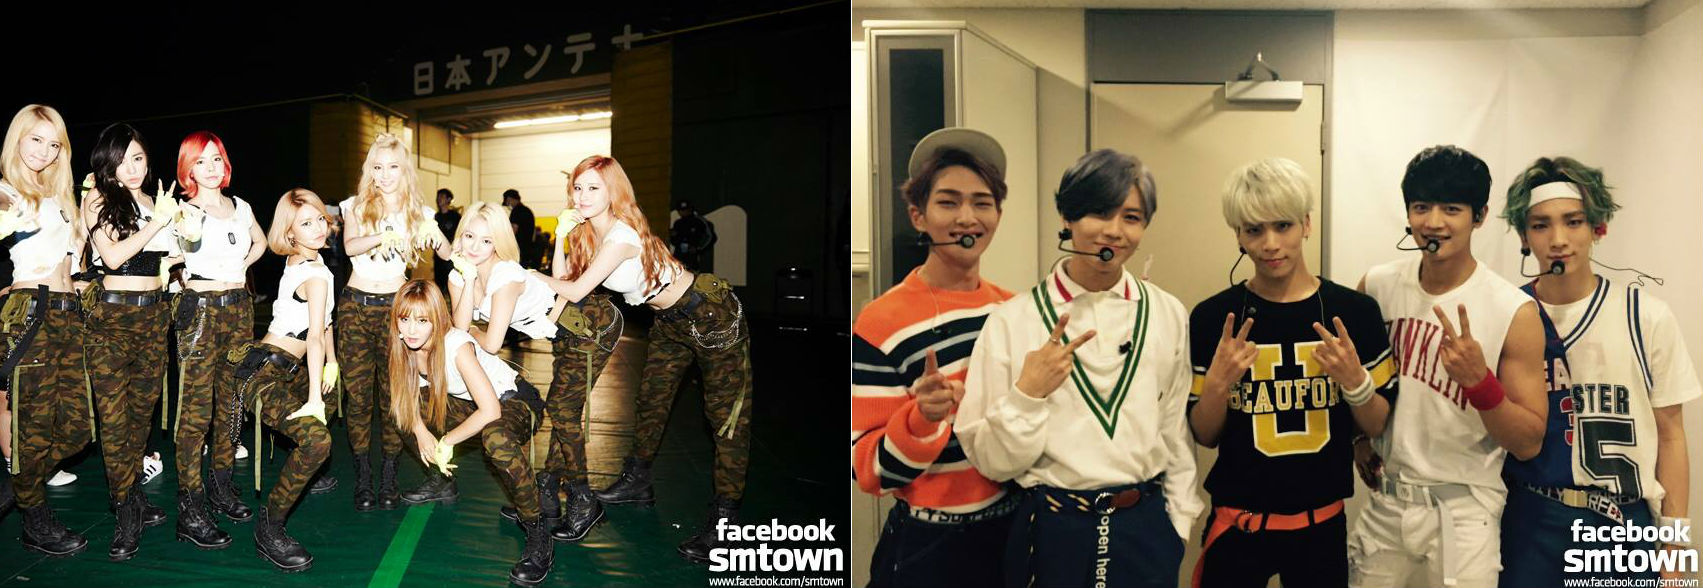 Image: SMTOWN's Facebook